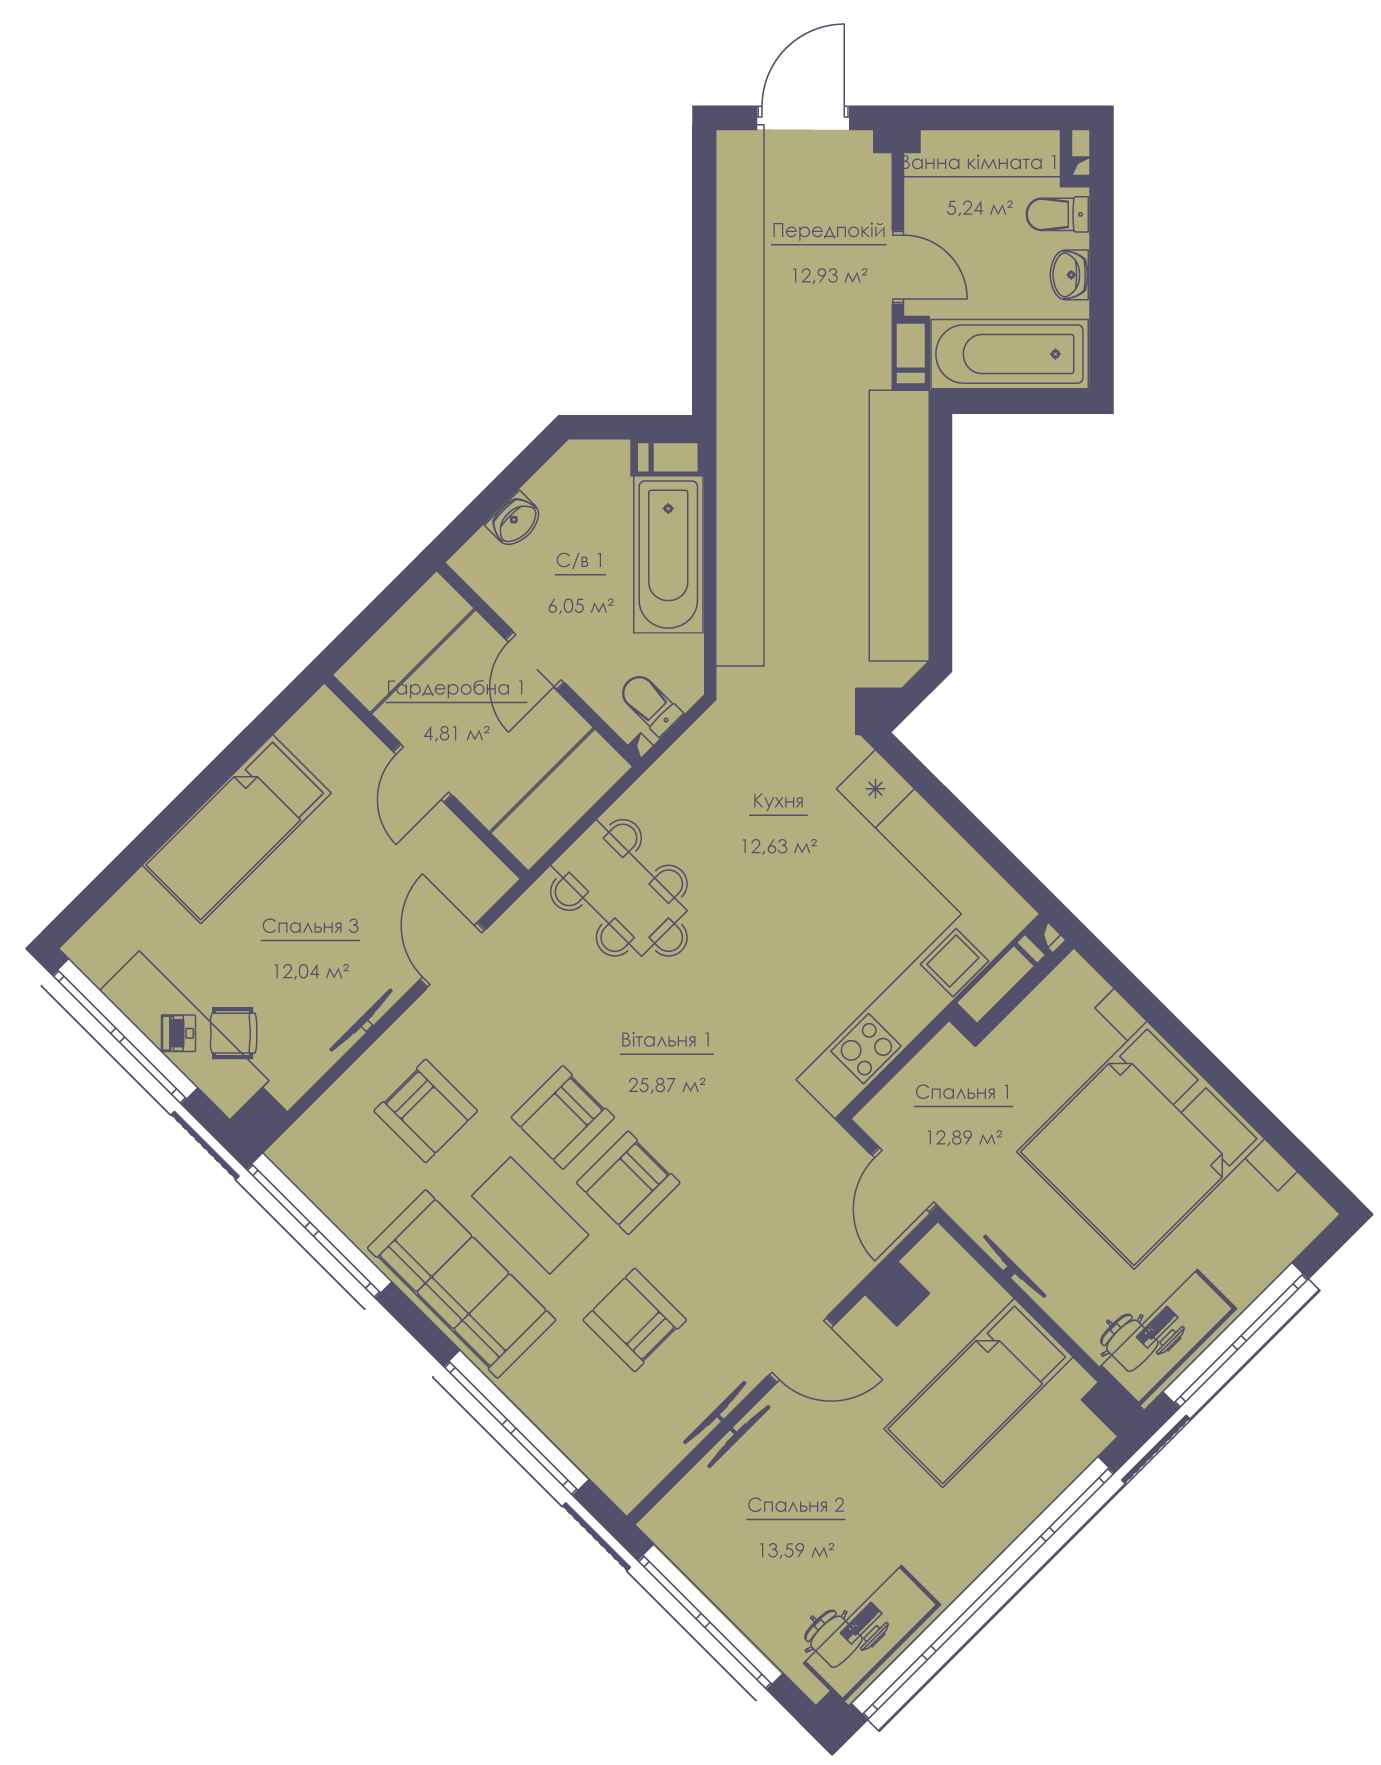 Apartment layout KV_147_3.4a_1_1_2-1